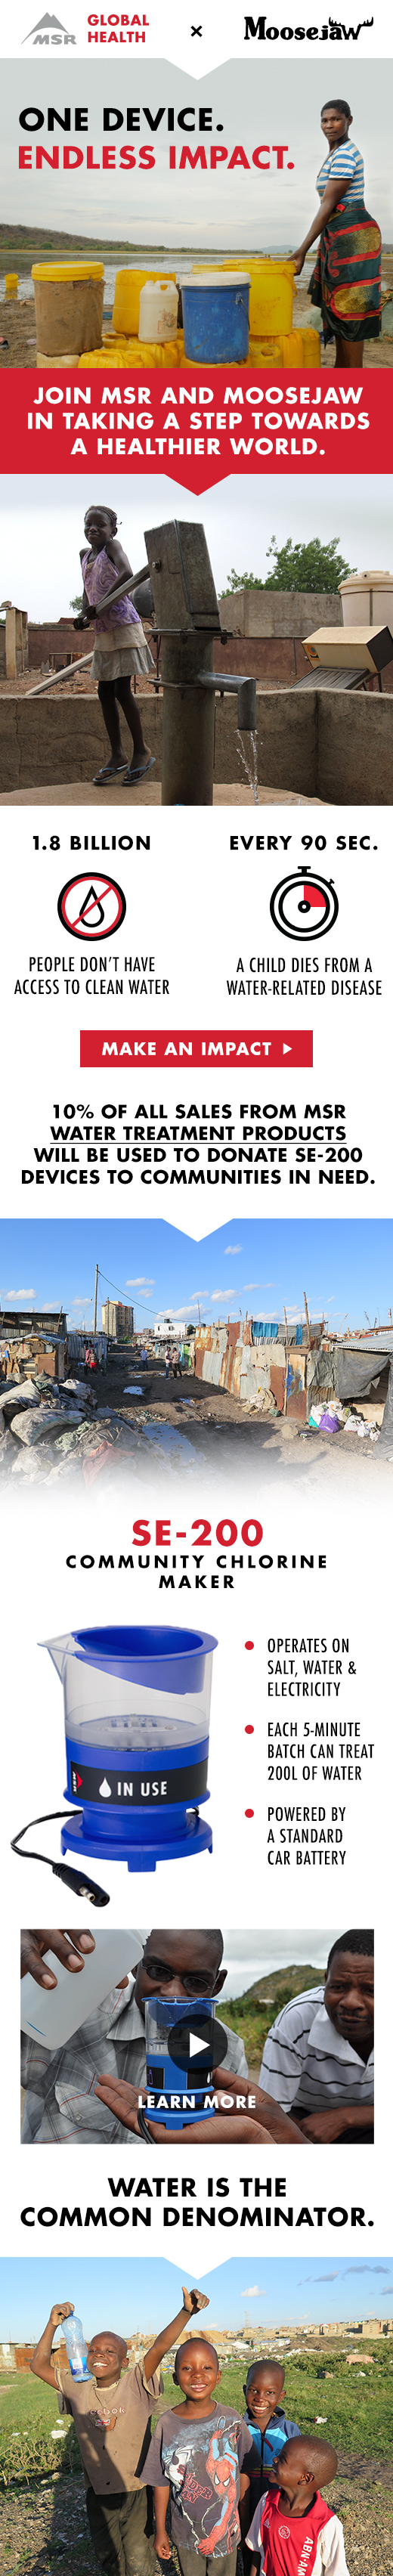 MSR-Global-Health-Mailer-4-21-17.jpg